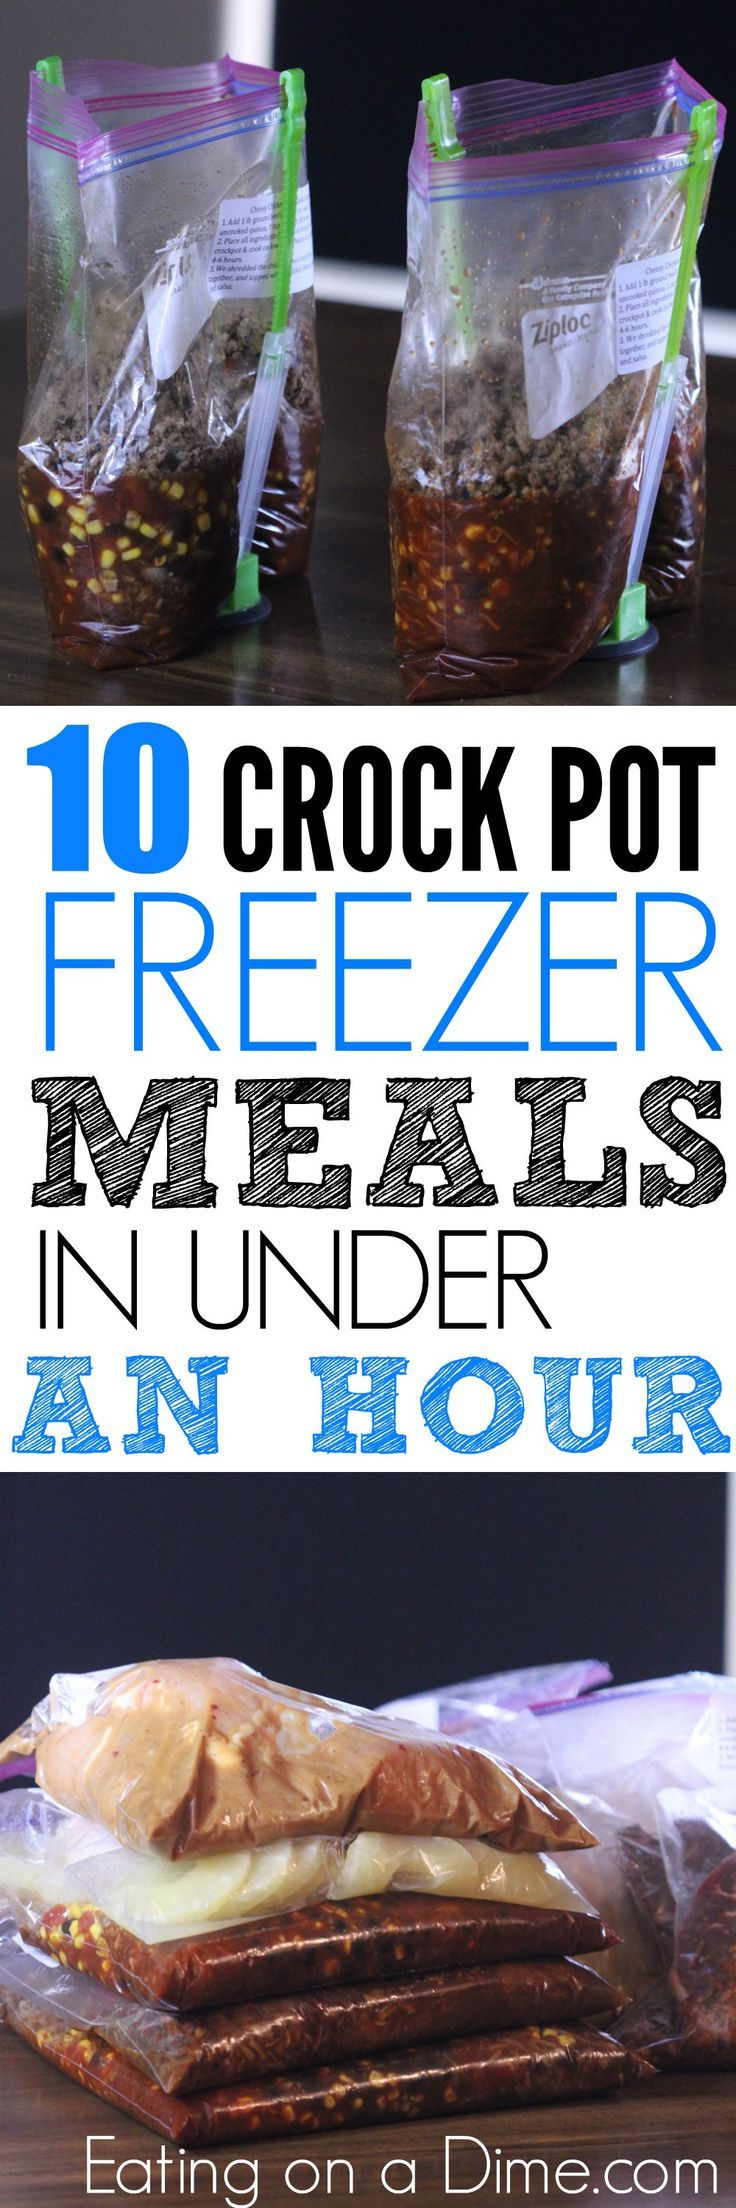 Easy Crock pot recipes. We have 10 crockpot make ahead Meals meals in under 1 hour!